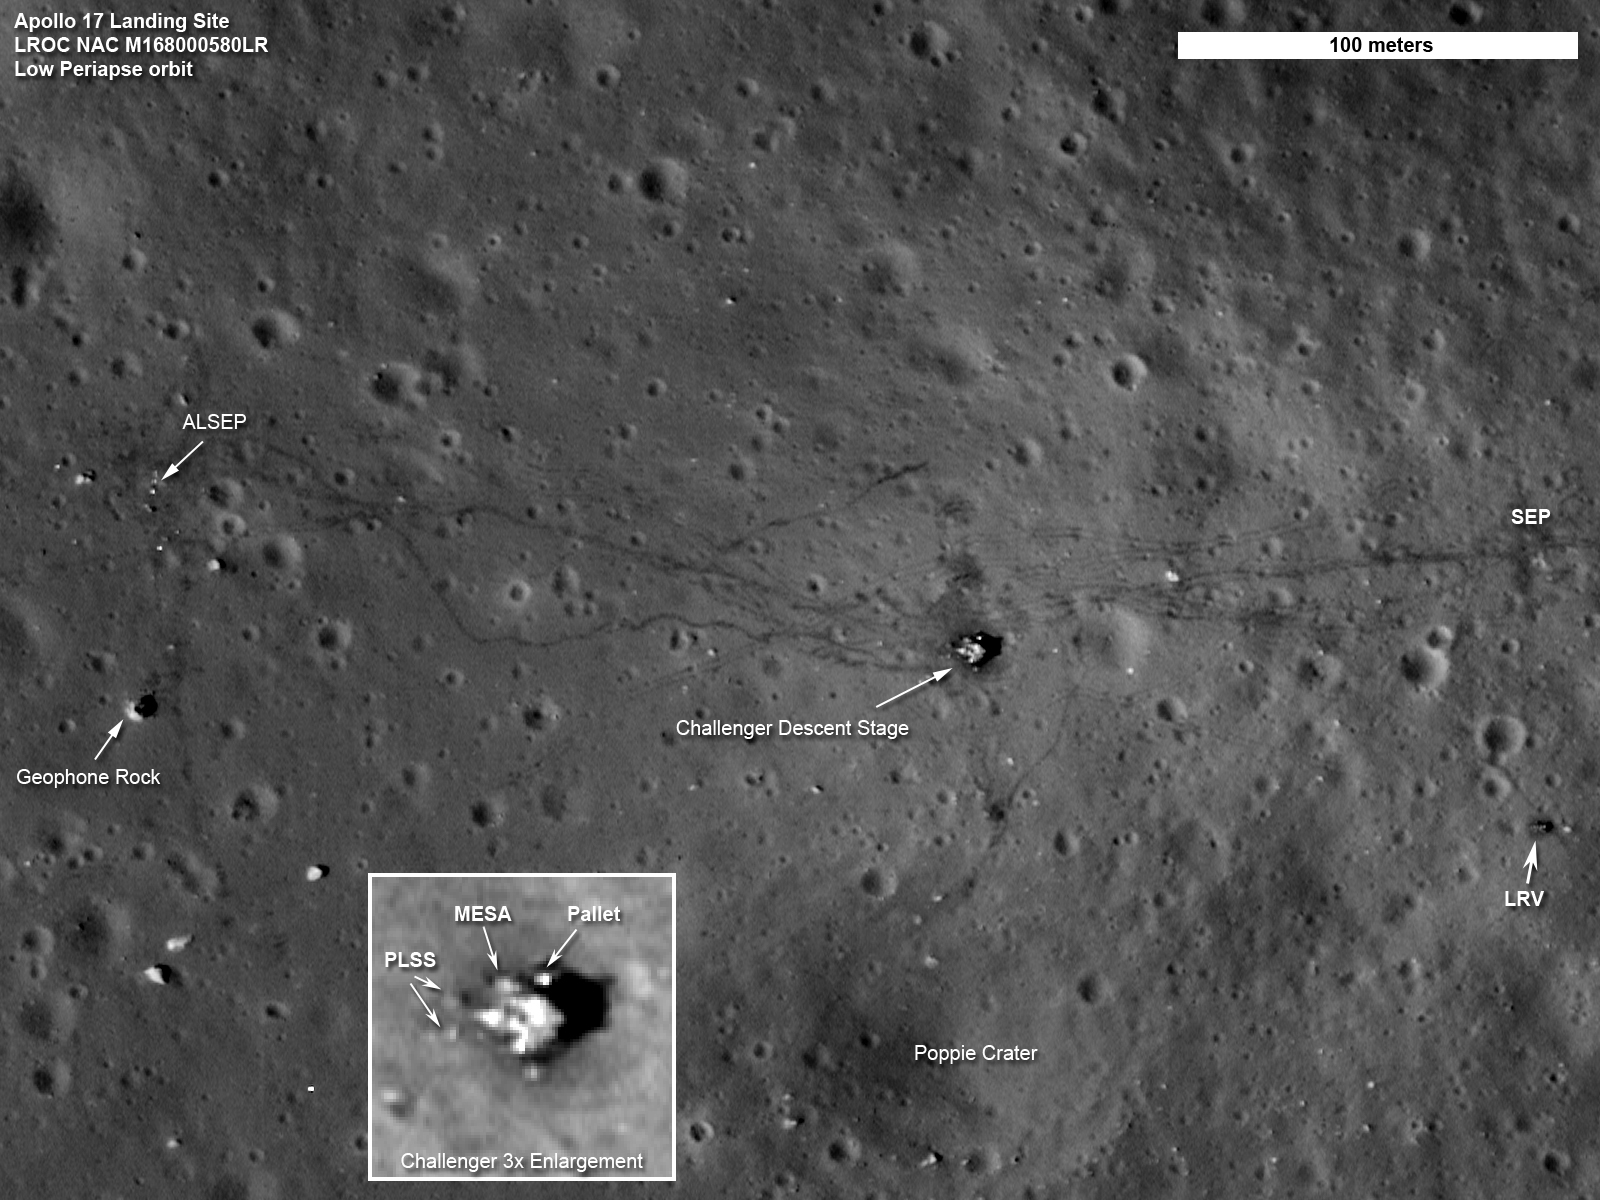 Apollo 17 Moon Landing Site Seen by Lunar Reconnaissance Orbiter